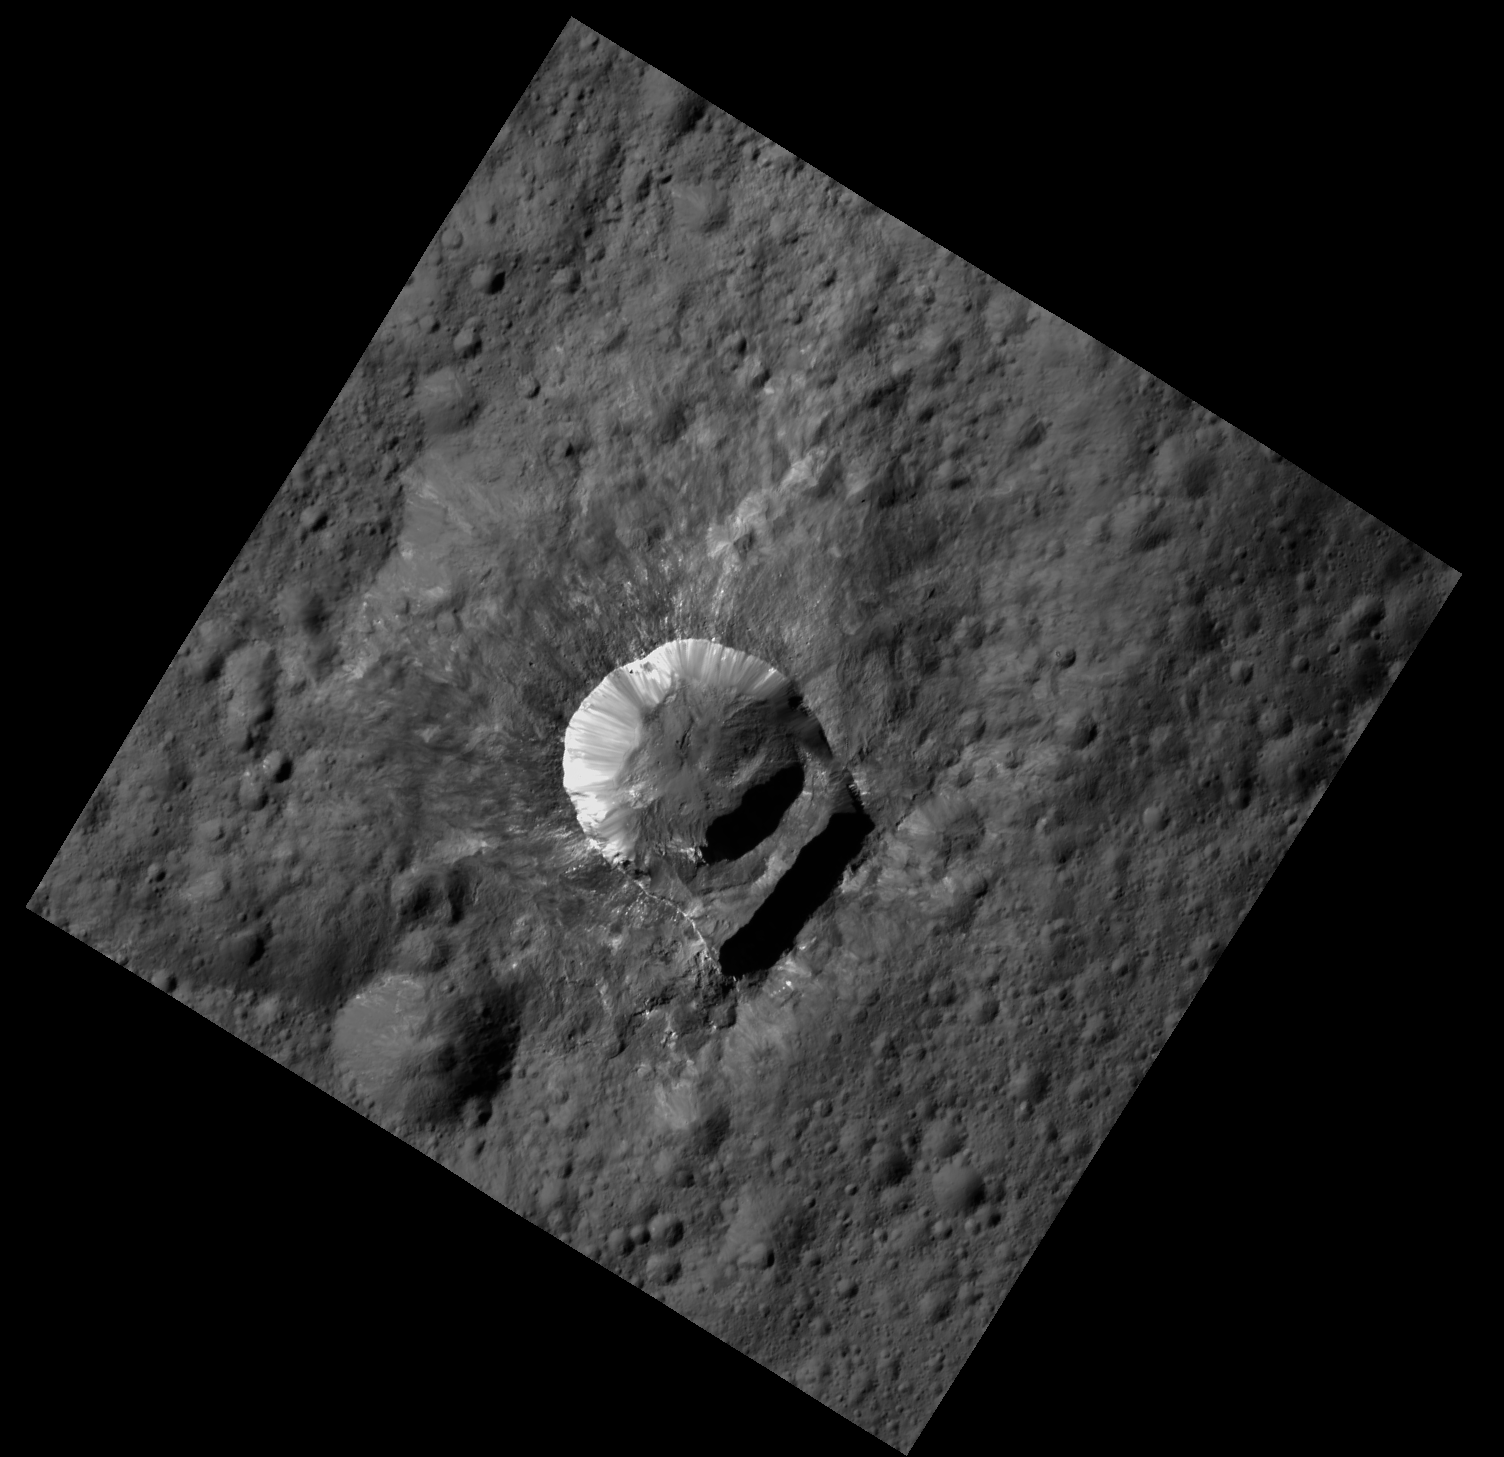 """Oxo Crater is unique because of the relatively large """"slump"""" in its crater rim. Credits: NASA/JPL-Caltech/UCLA/MPS/DLR/IDA/PSI"""